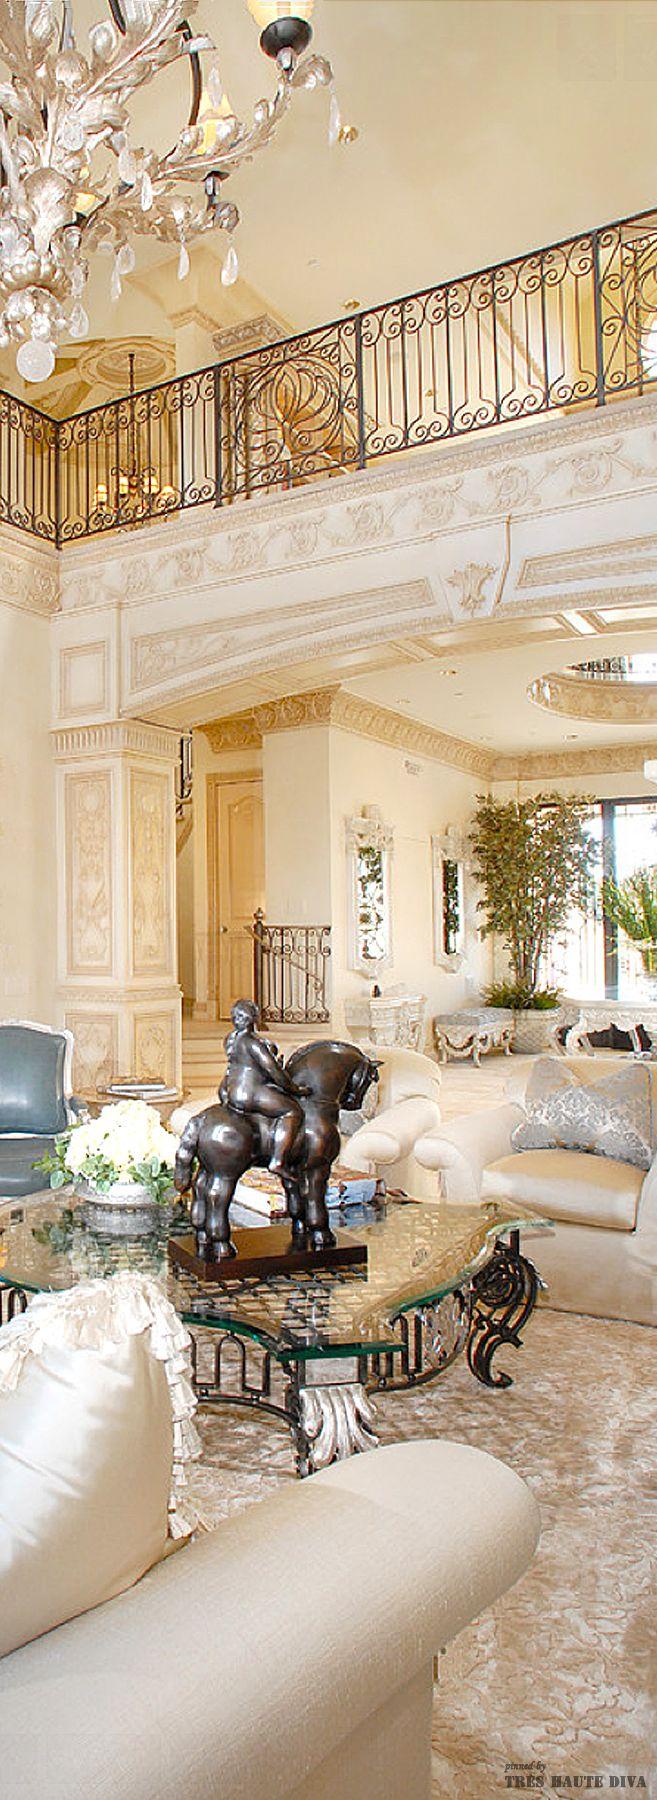 Wrought Iron Living Room Furniture 114 Best Images About Wrought Iron Tables On Pinterest Furniture